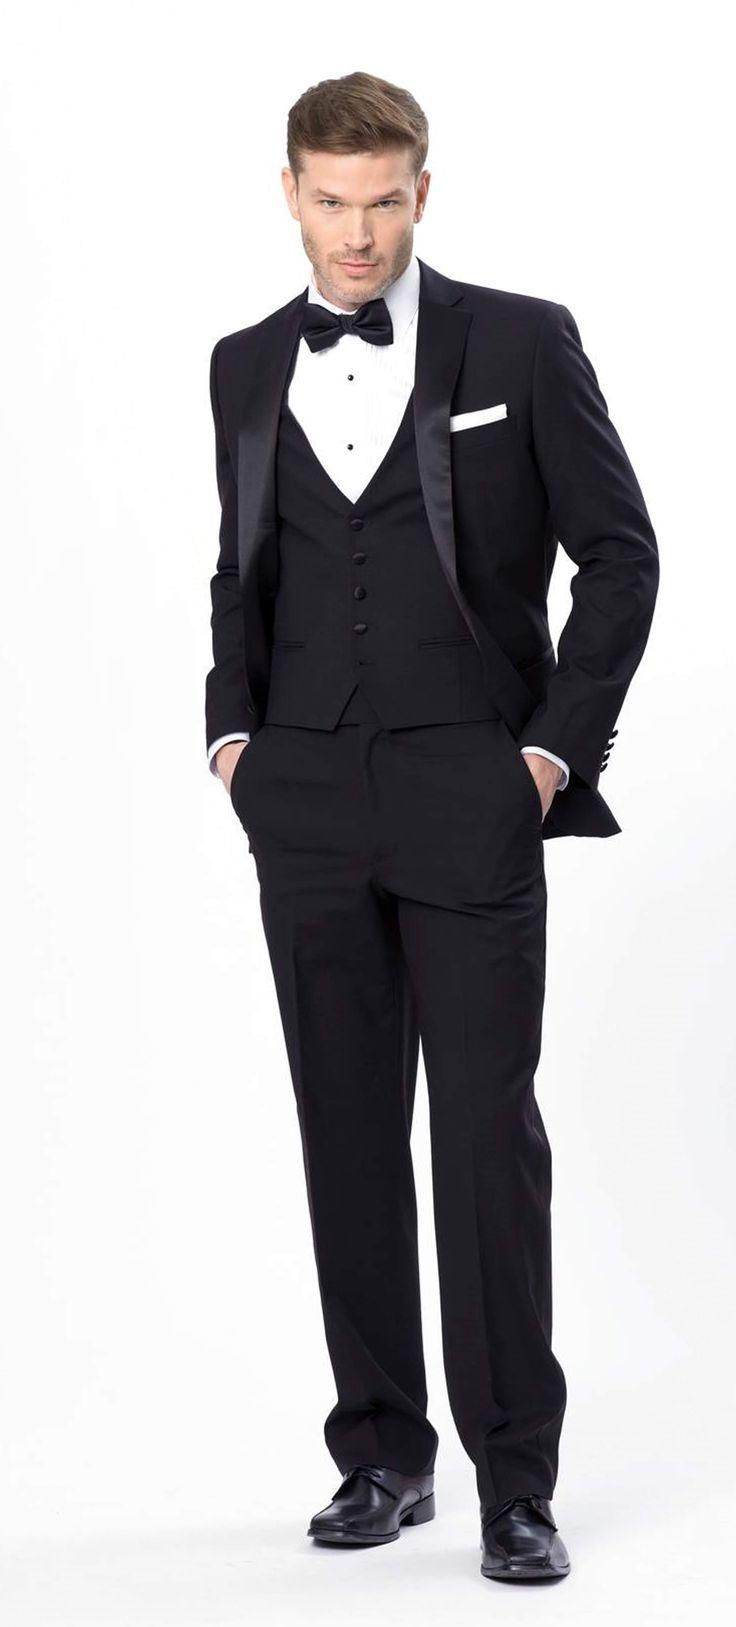 Stylish Wedding Suits Perfect for Dad   Wedding suits, Weddings ...